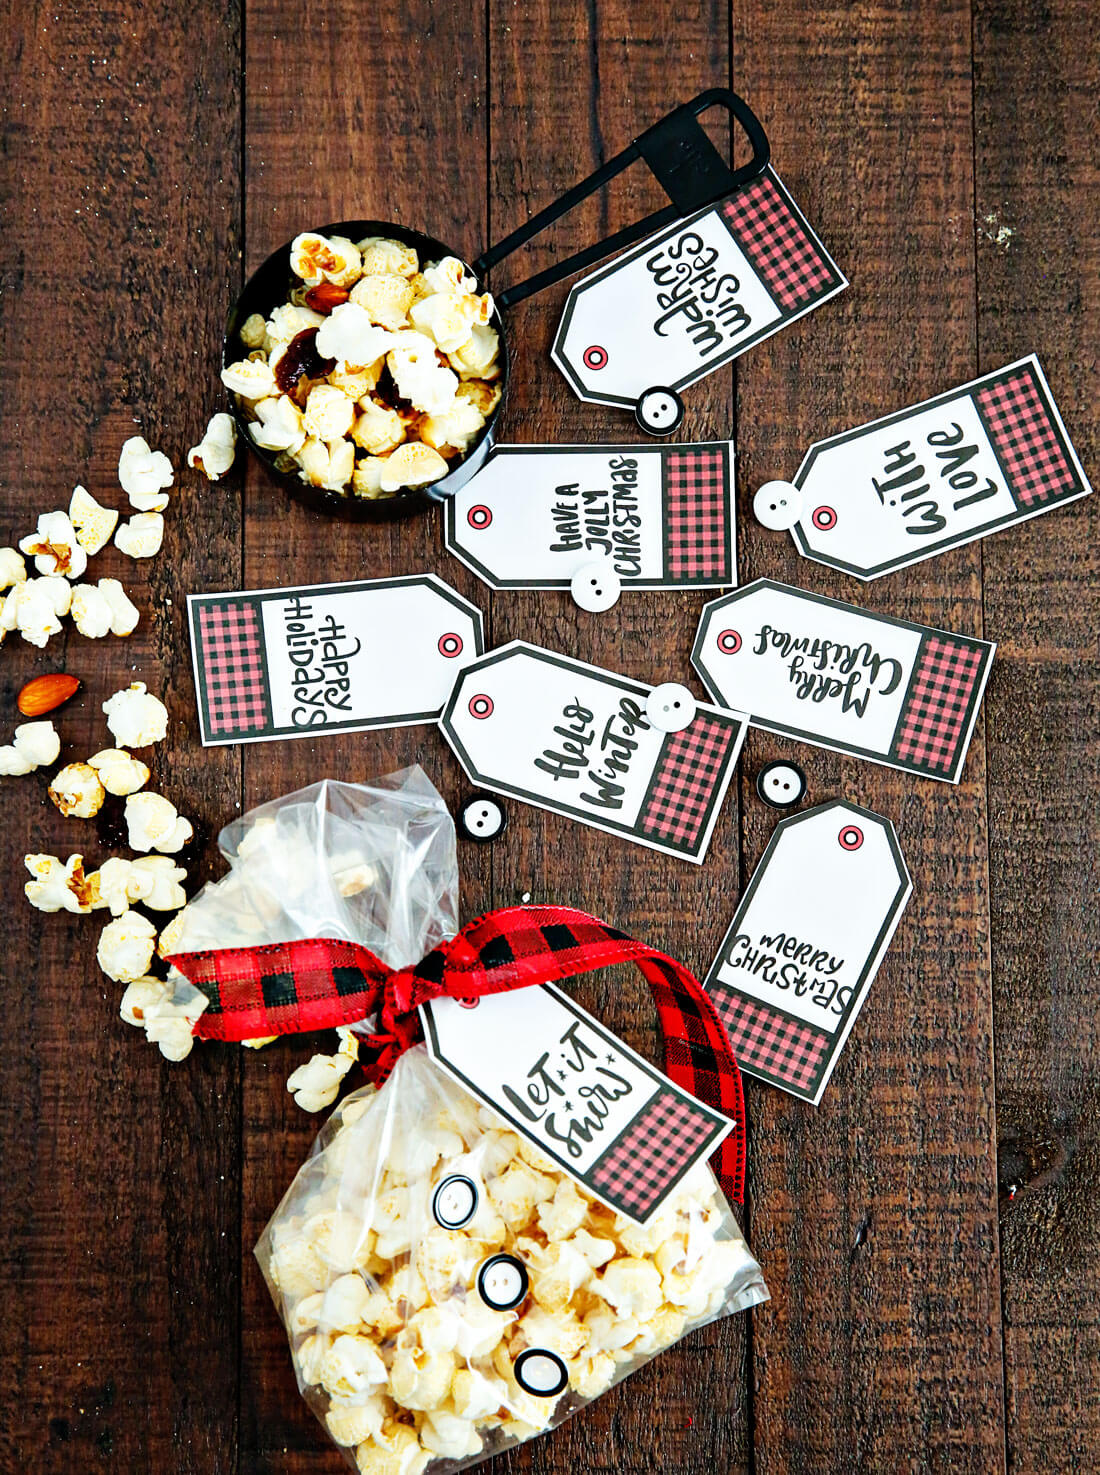 Holiday Kettle Corn Snack Mix - make this treat for friends and neighbors for Christmas! With cute printables from www.thirtyhandmadedays.com